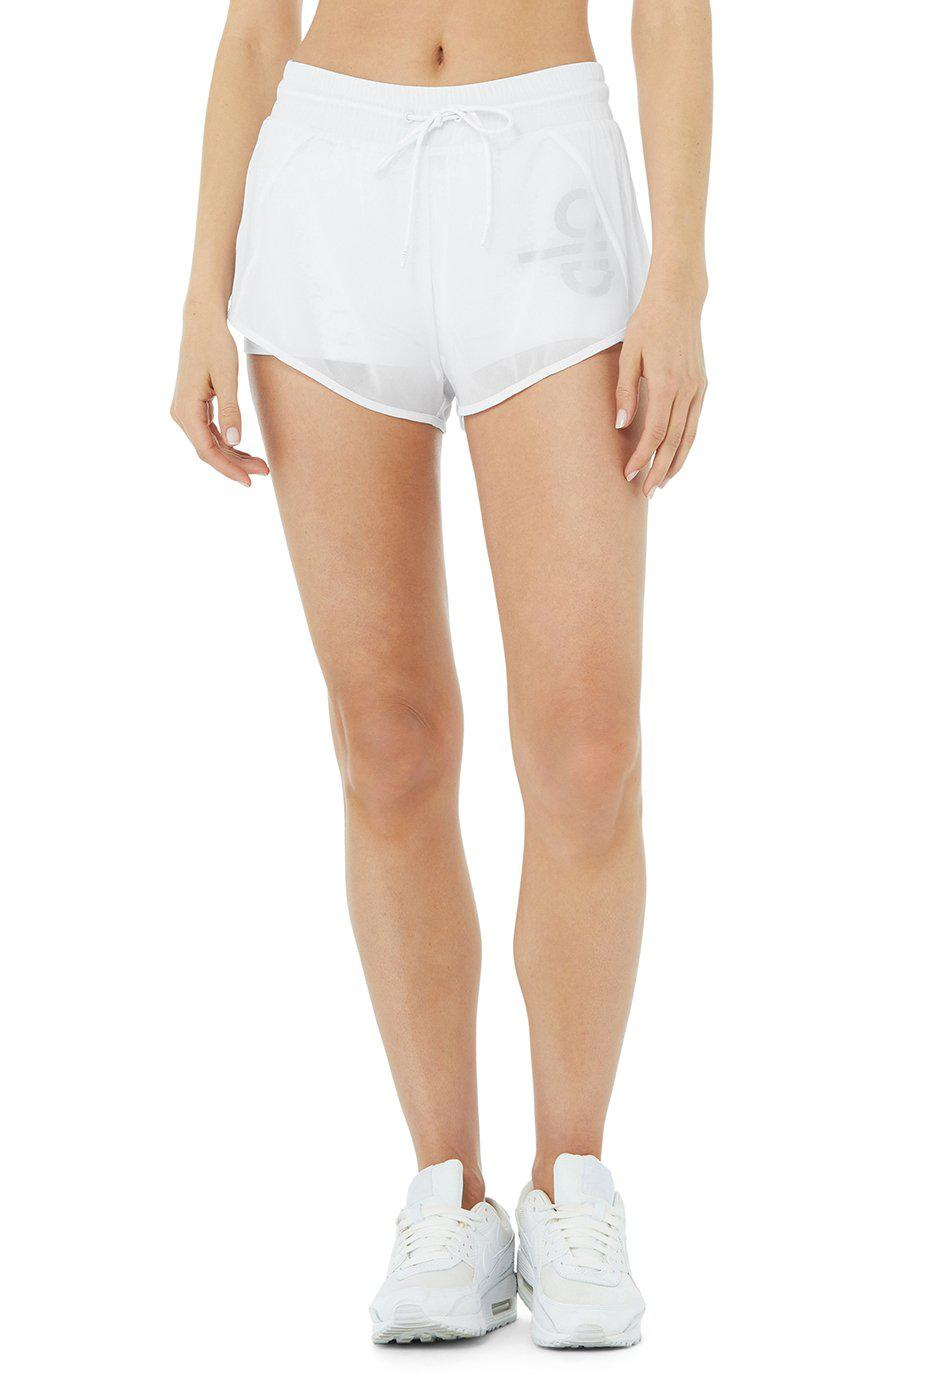 Ambience Short - Graphic - White/White